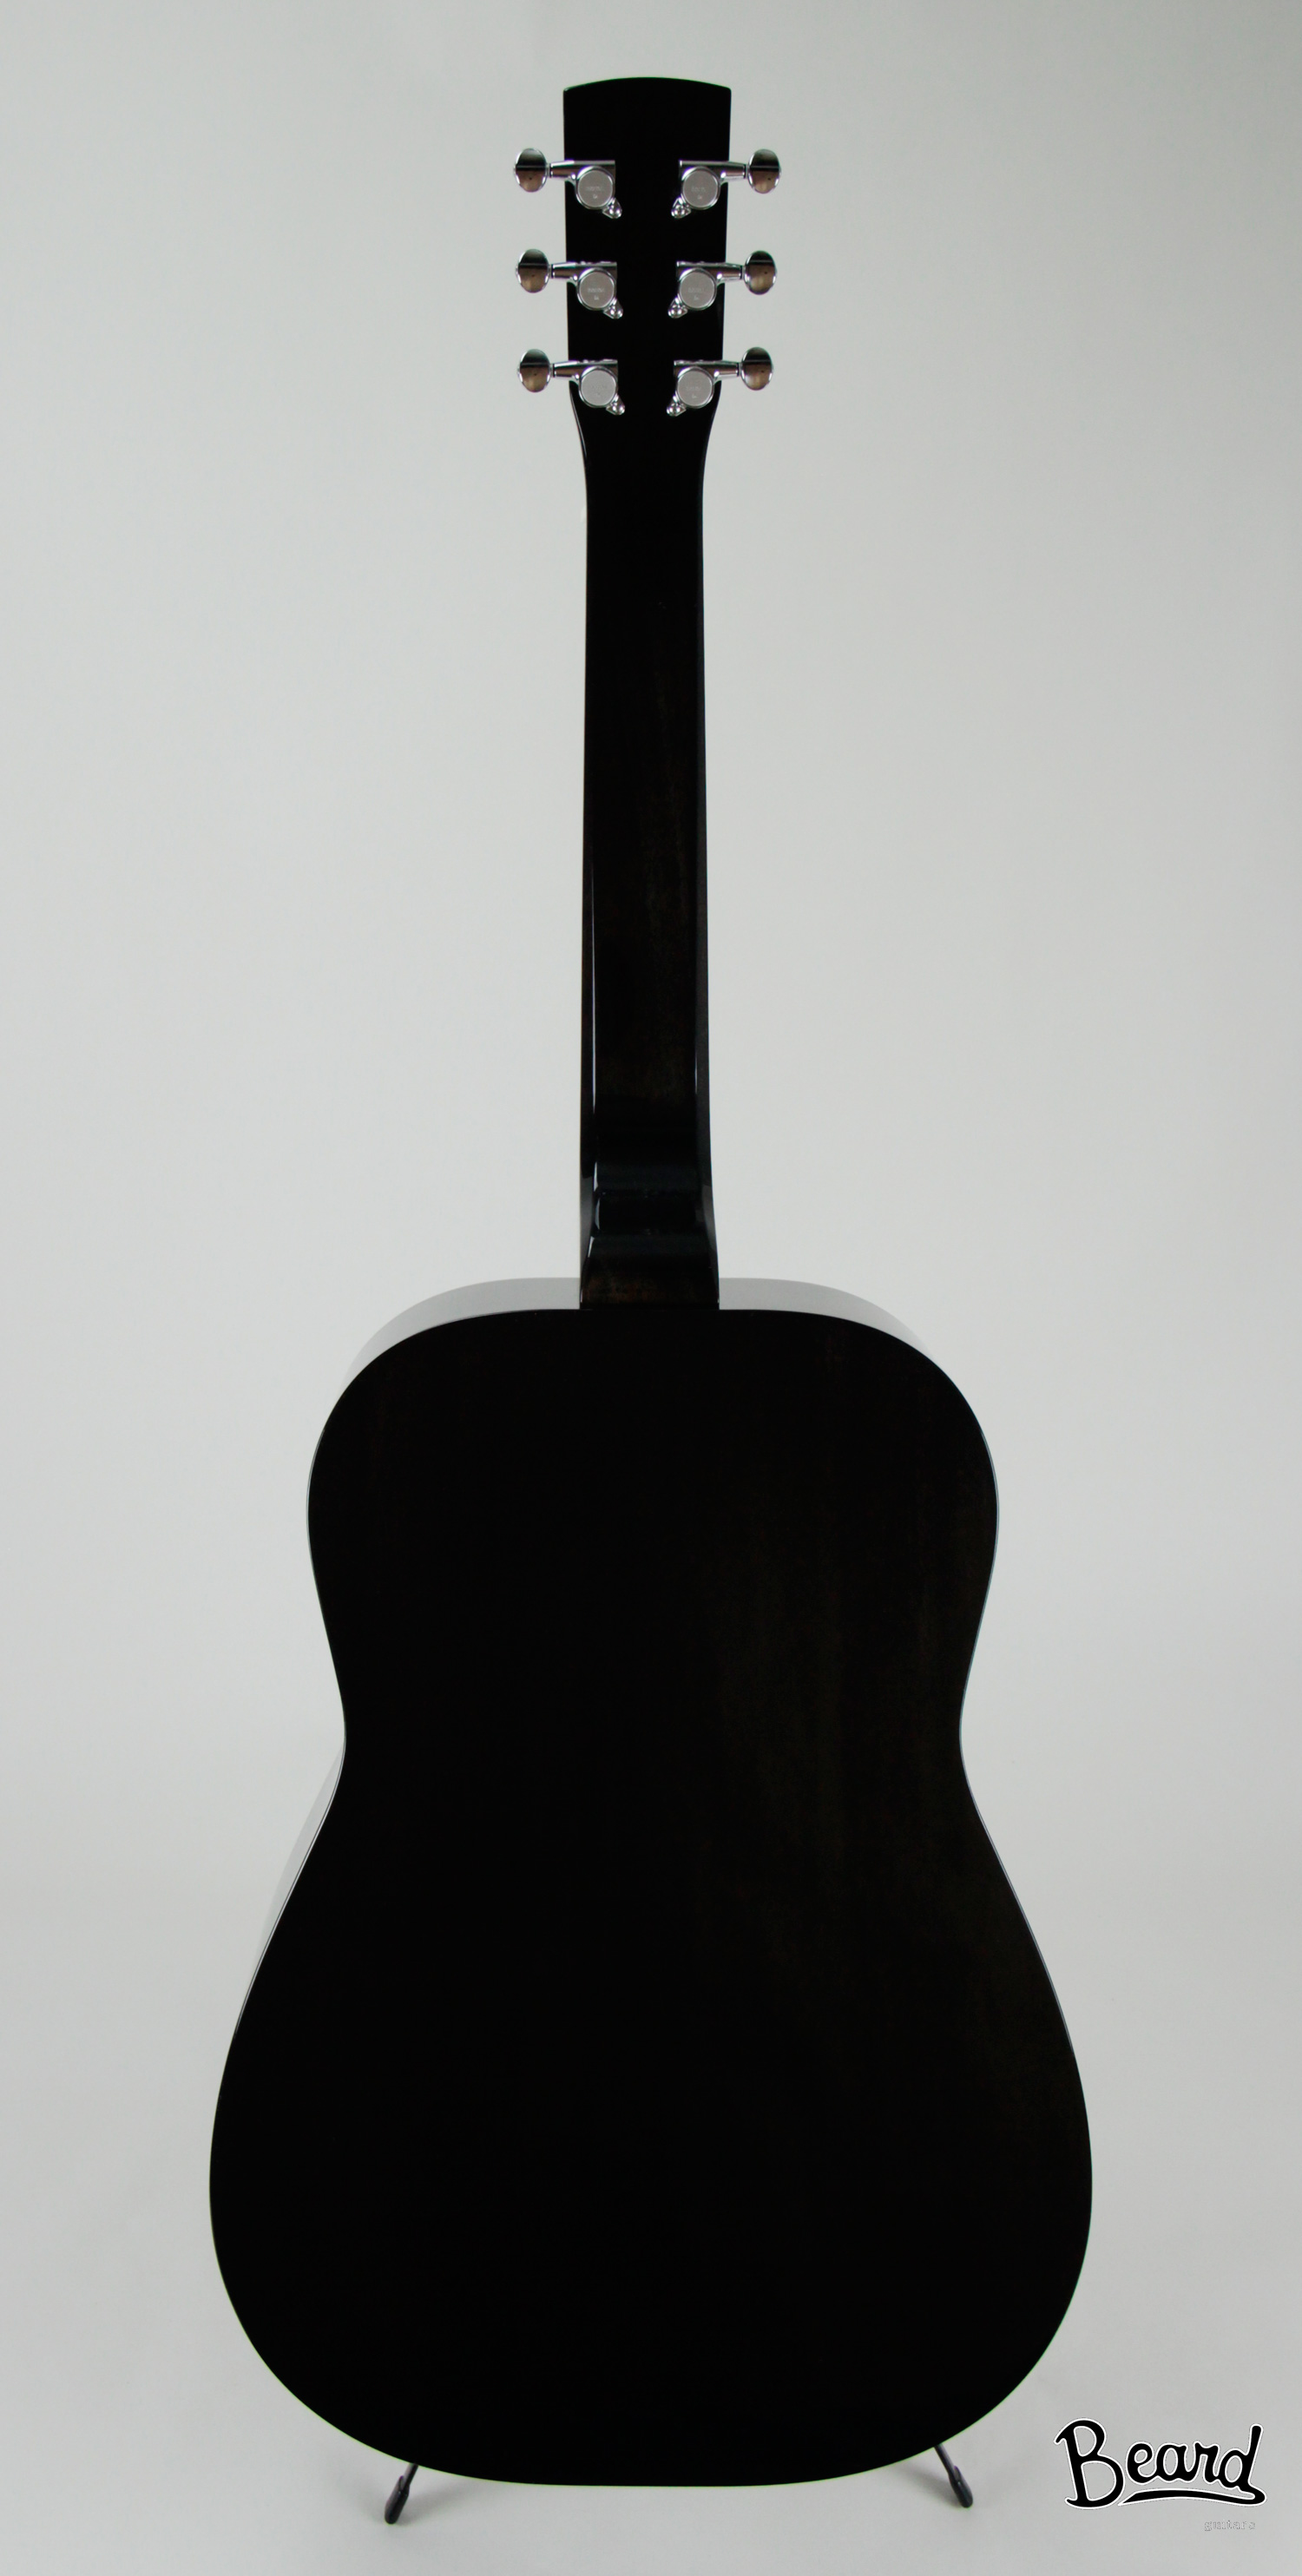 BlondeBeard™ Mahogany back and sides. Spruce top